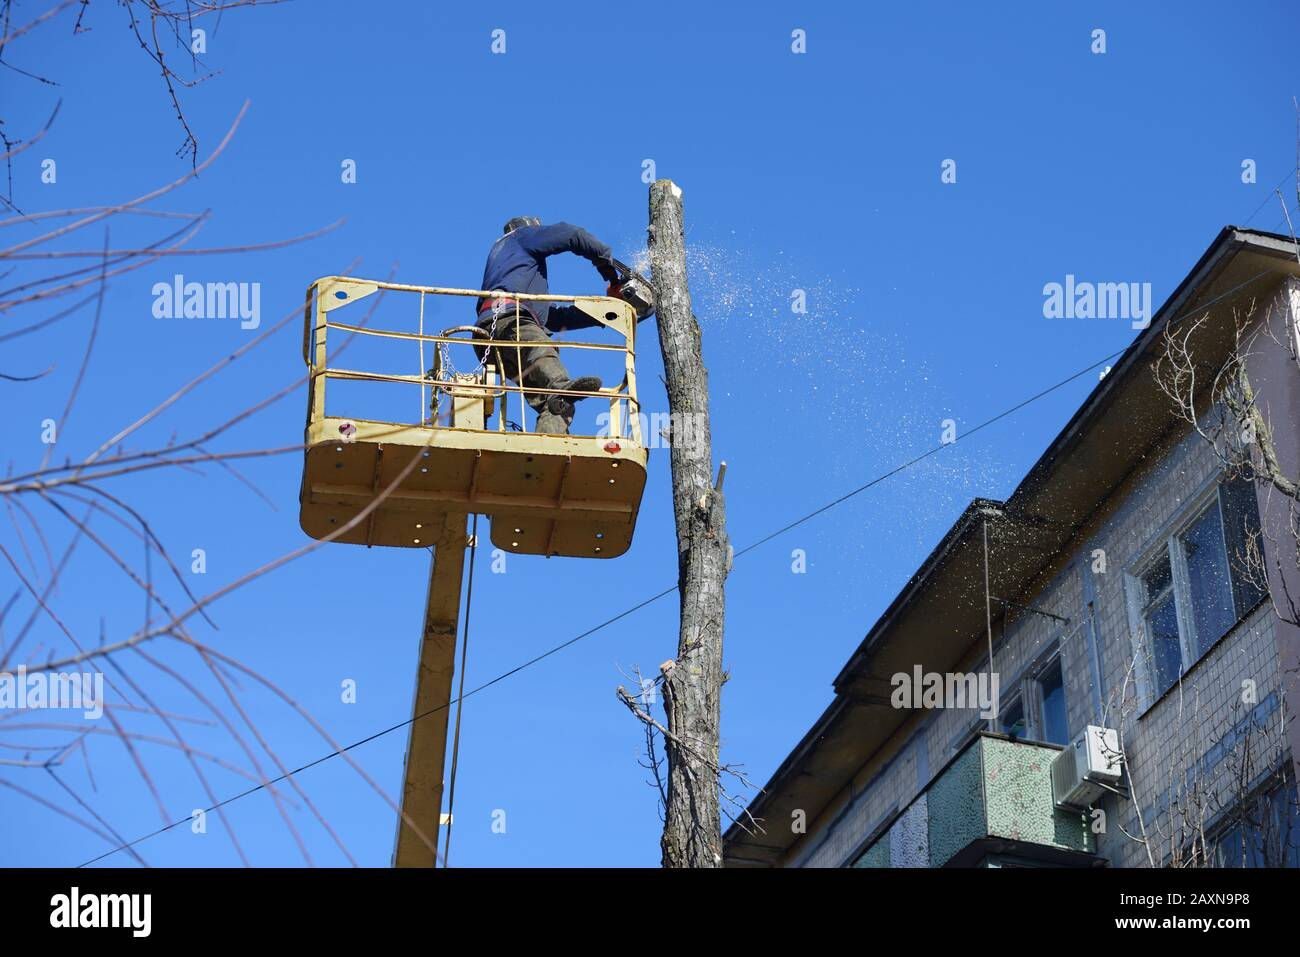 Municipal worker cutting dead standing tree with chainsaw using truck-mounted lift Stock Photo